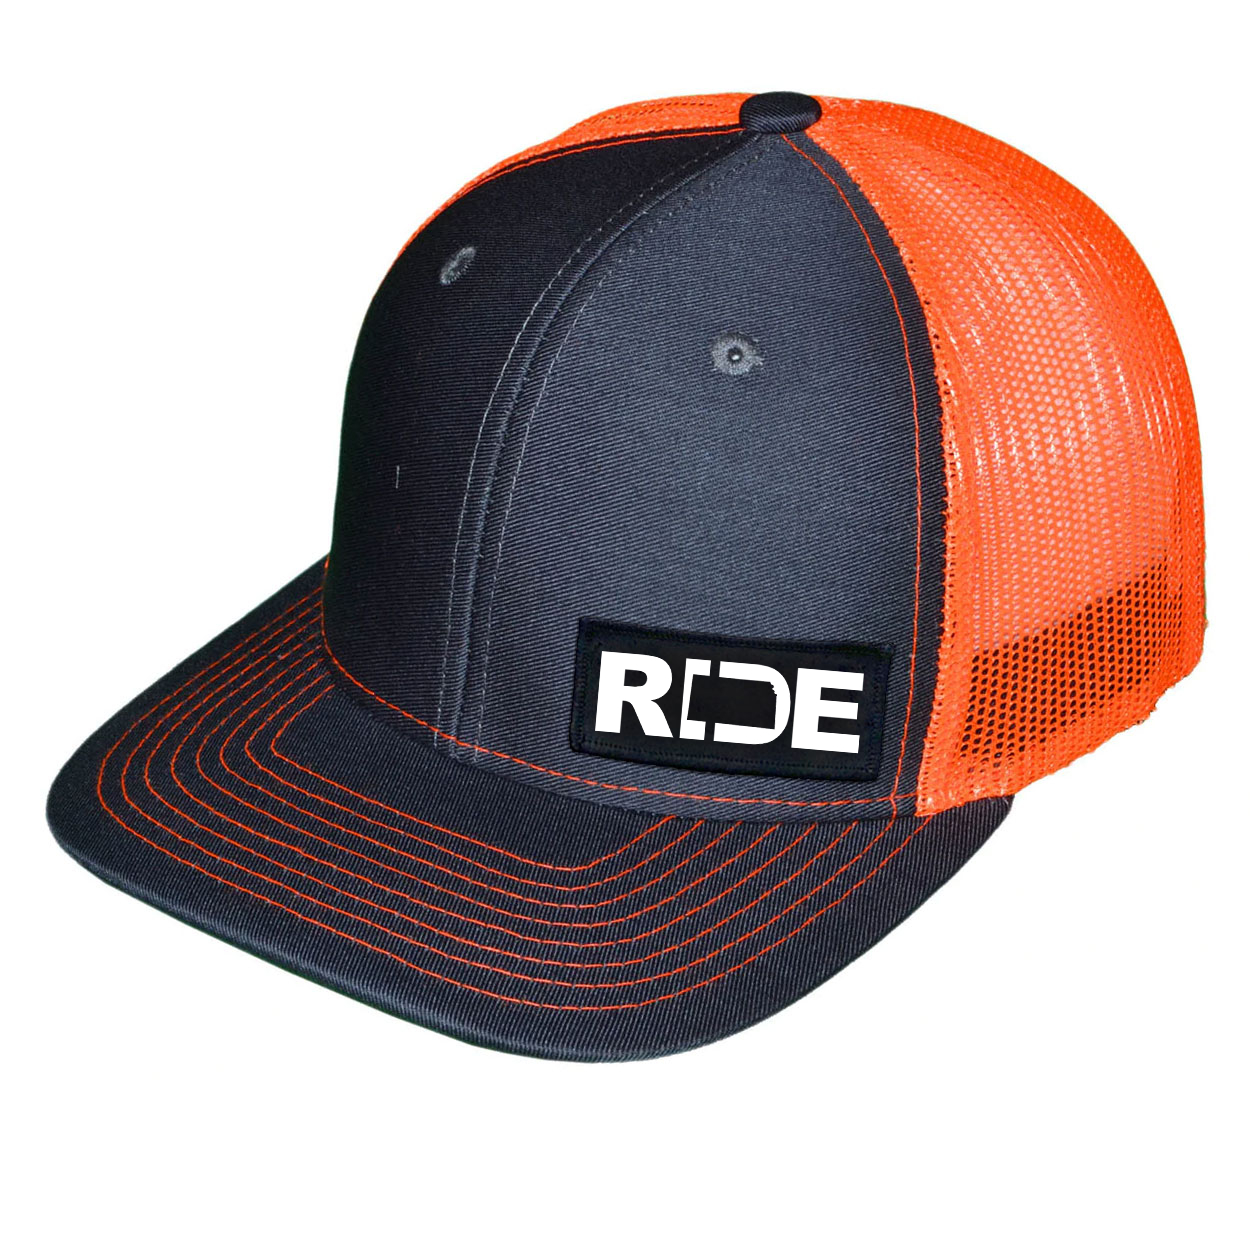 Ride Kansas Night Out Woven Patch Snapback Trucker Hat Dark Gray/Orange (White Logo)